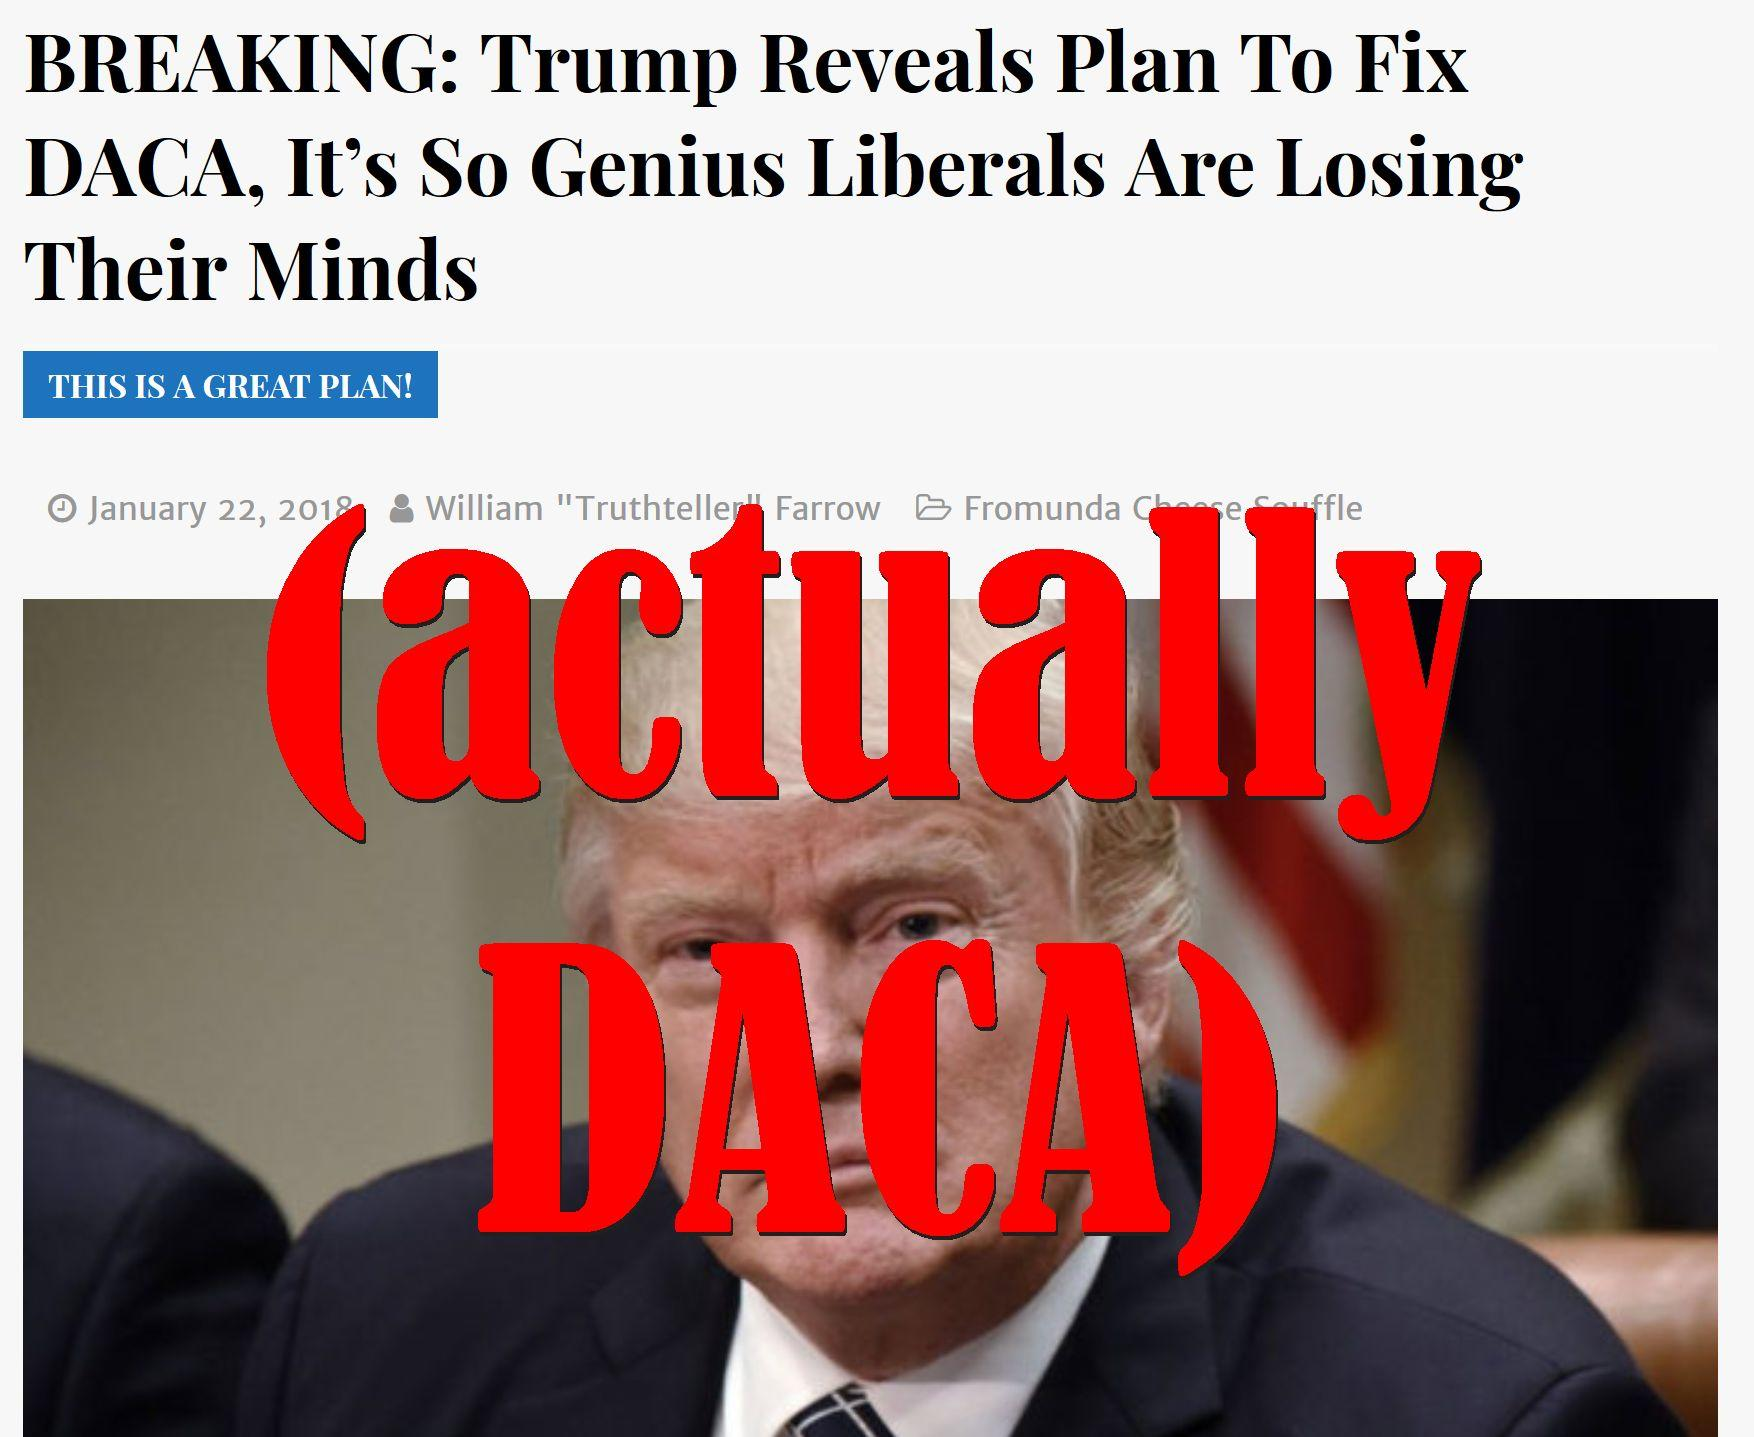 Fake News: Trump Did NOT Reveal Plan To Fix DACA, Liberals NOT Losing Their Minds